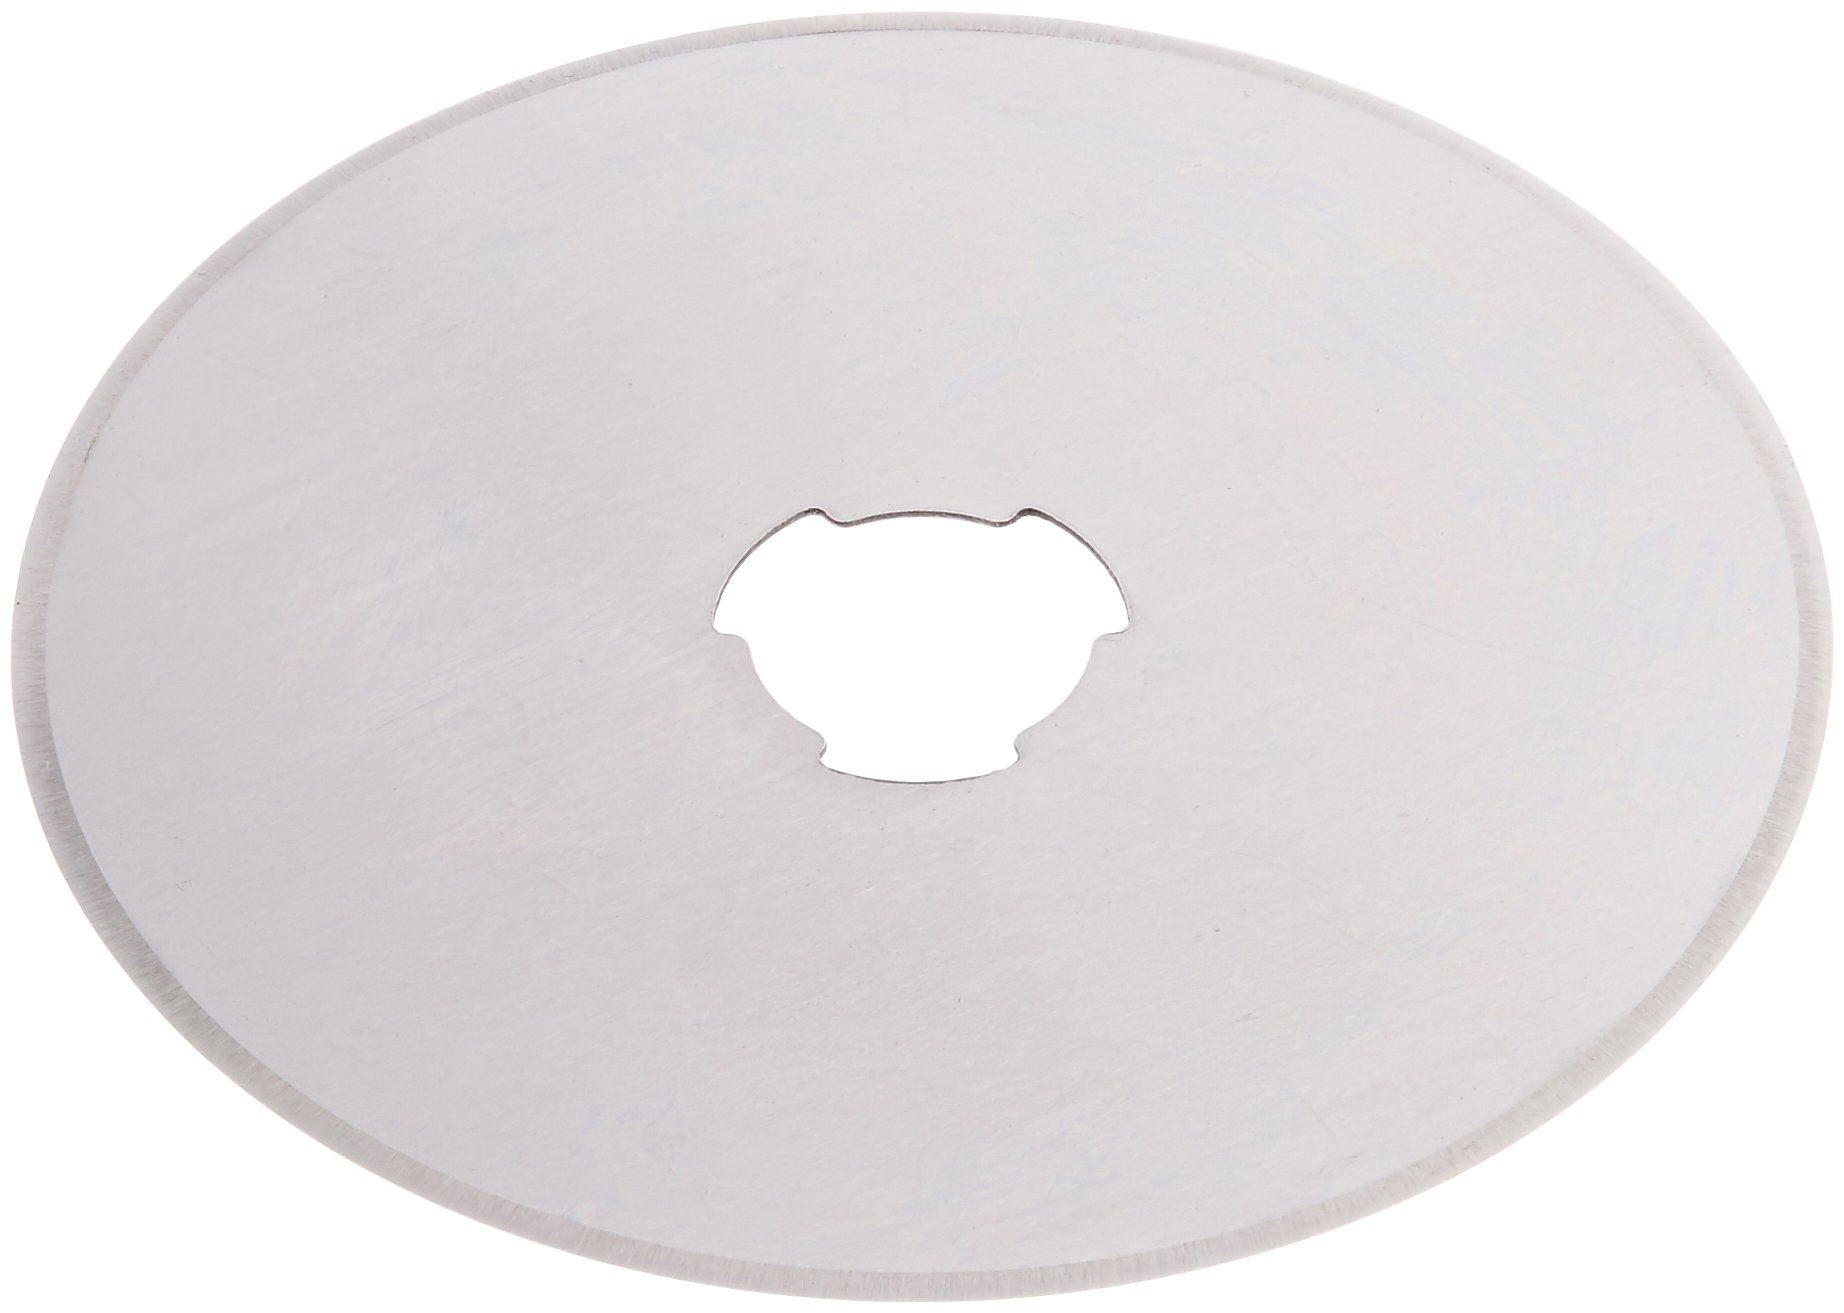 Grace Company TC17041 TrueCut Rotary Cutter Replacement Blades-45mm 5/Pkg by Grace Company